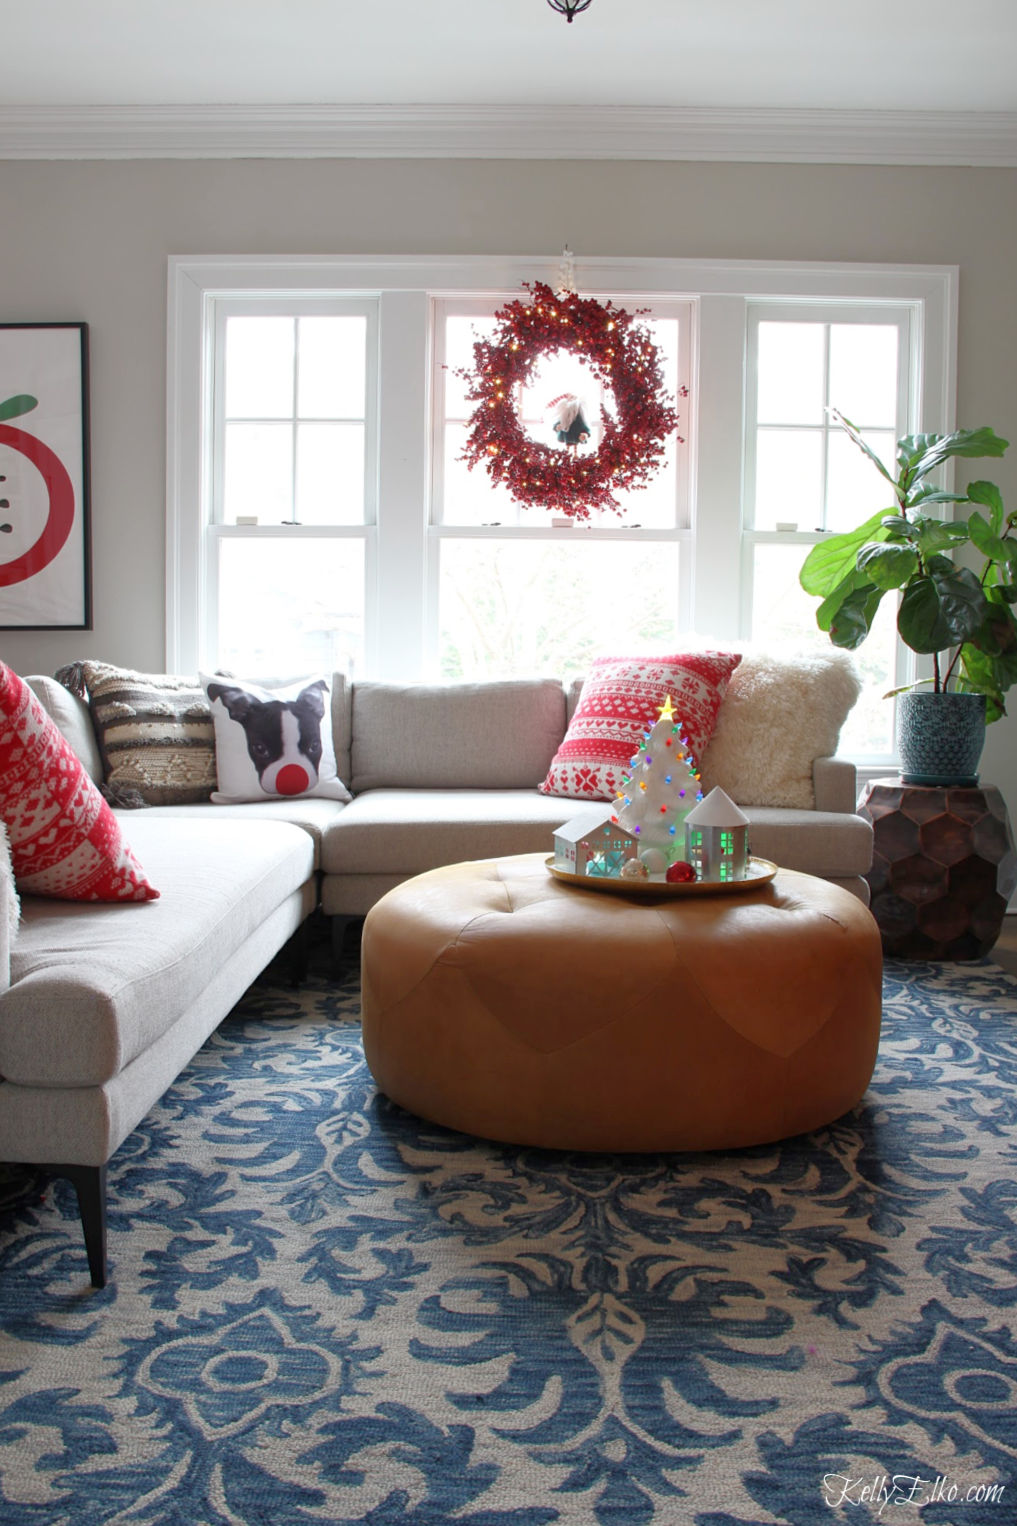 Love this cozy Christmas family room with Loloi rug and huge leather ottoman kellyelko.com #bohochristmas #christmaswreath #leatherottoman #christmasfamilyroom #redchristmas #christmasdecor #christmadecorations